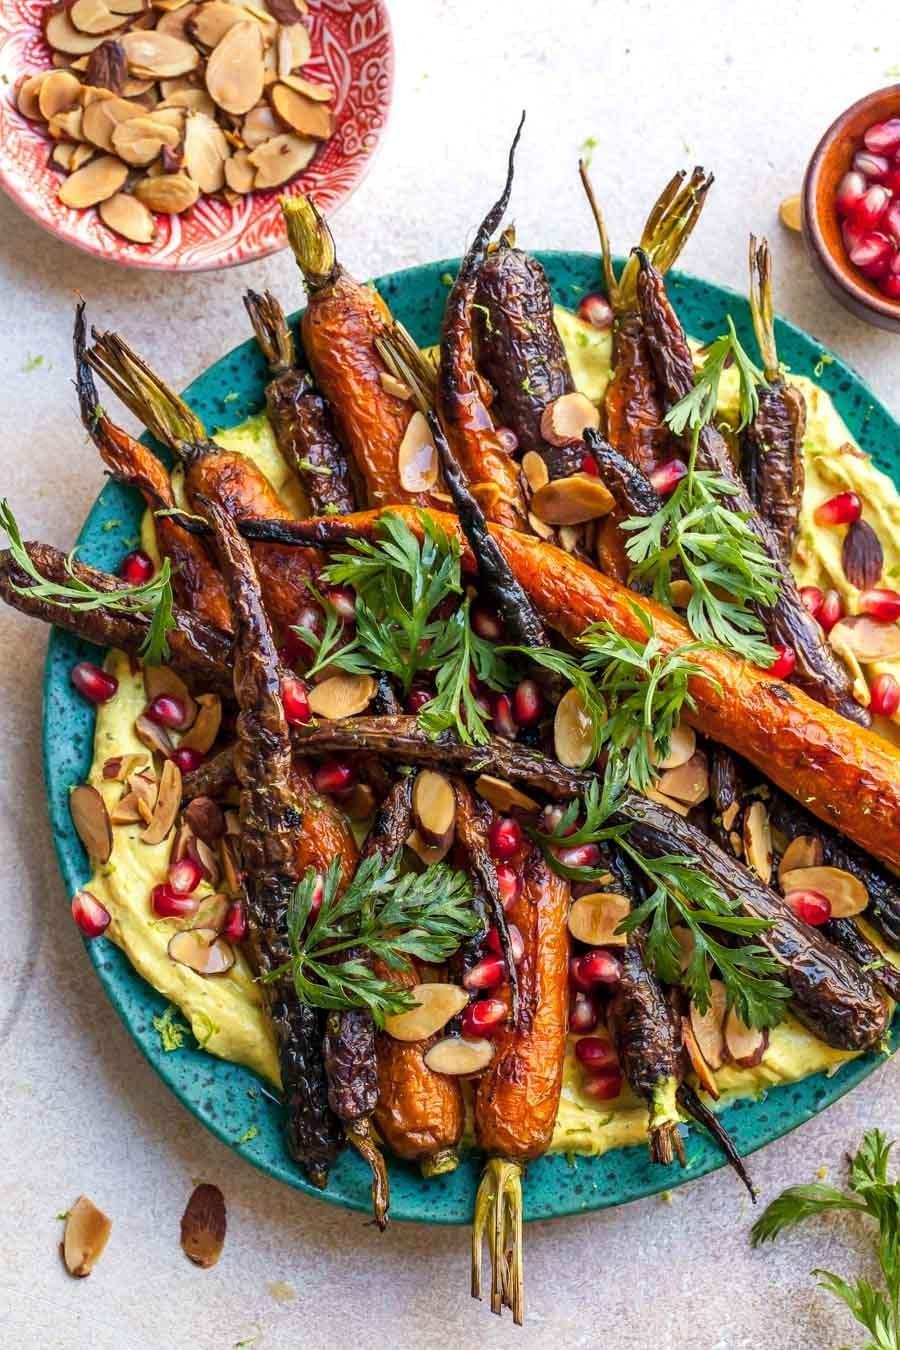 """<p>This simple dish requires only five ingredients <em>and</em> is vegetarian. While the original recipe serves six, you can cut the recipe in thirds to serve two. </p> <p><strong>Get the recipe:</strong> <a href=""""http://dishingouthealth.com/roasted-carrots-with-curried-yogurt-5-ingredients/"""" class=""""link rapid-noclick-resp"""" rel=""""nofollow noopener"""" target=""""_blank"""" data-ylk=""""slk:roasted carrots with curried yogurt"""">roasted carrots with curried yogurt</a></p>"""